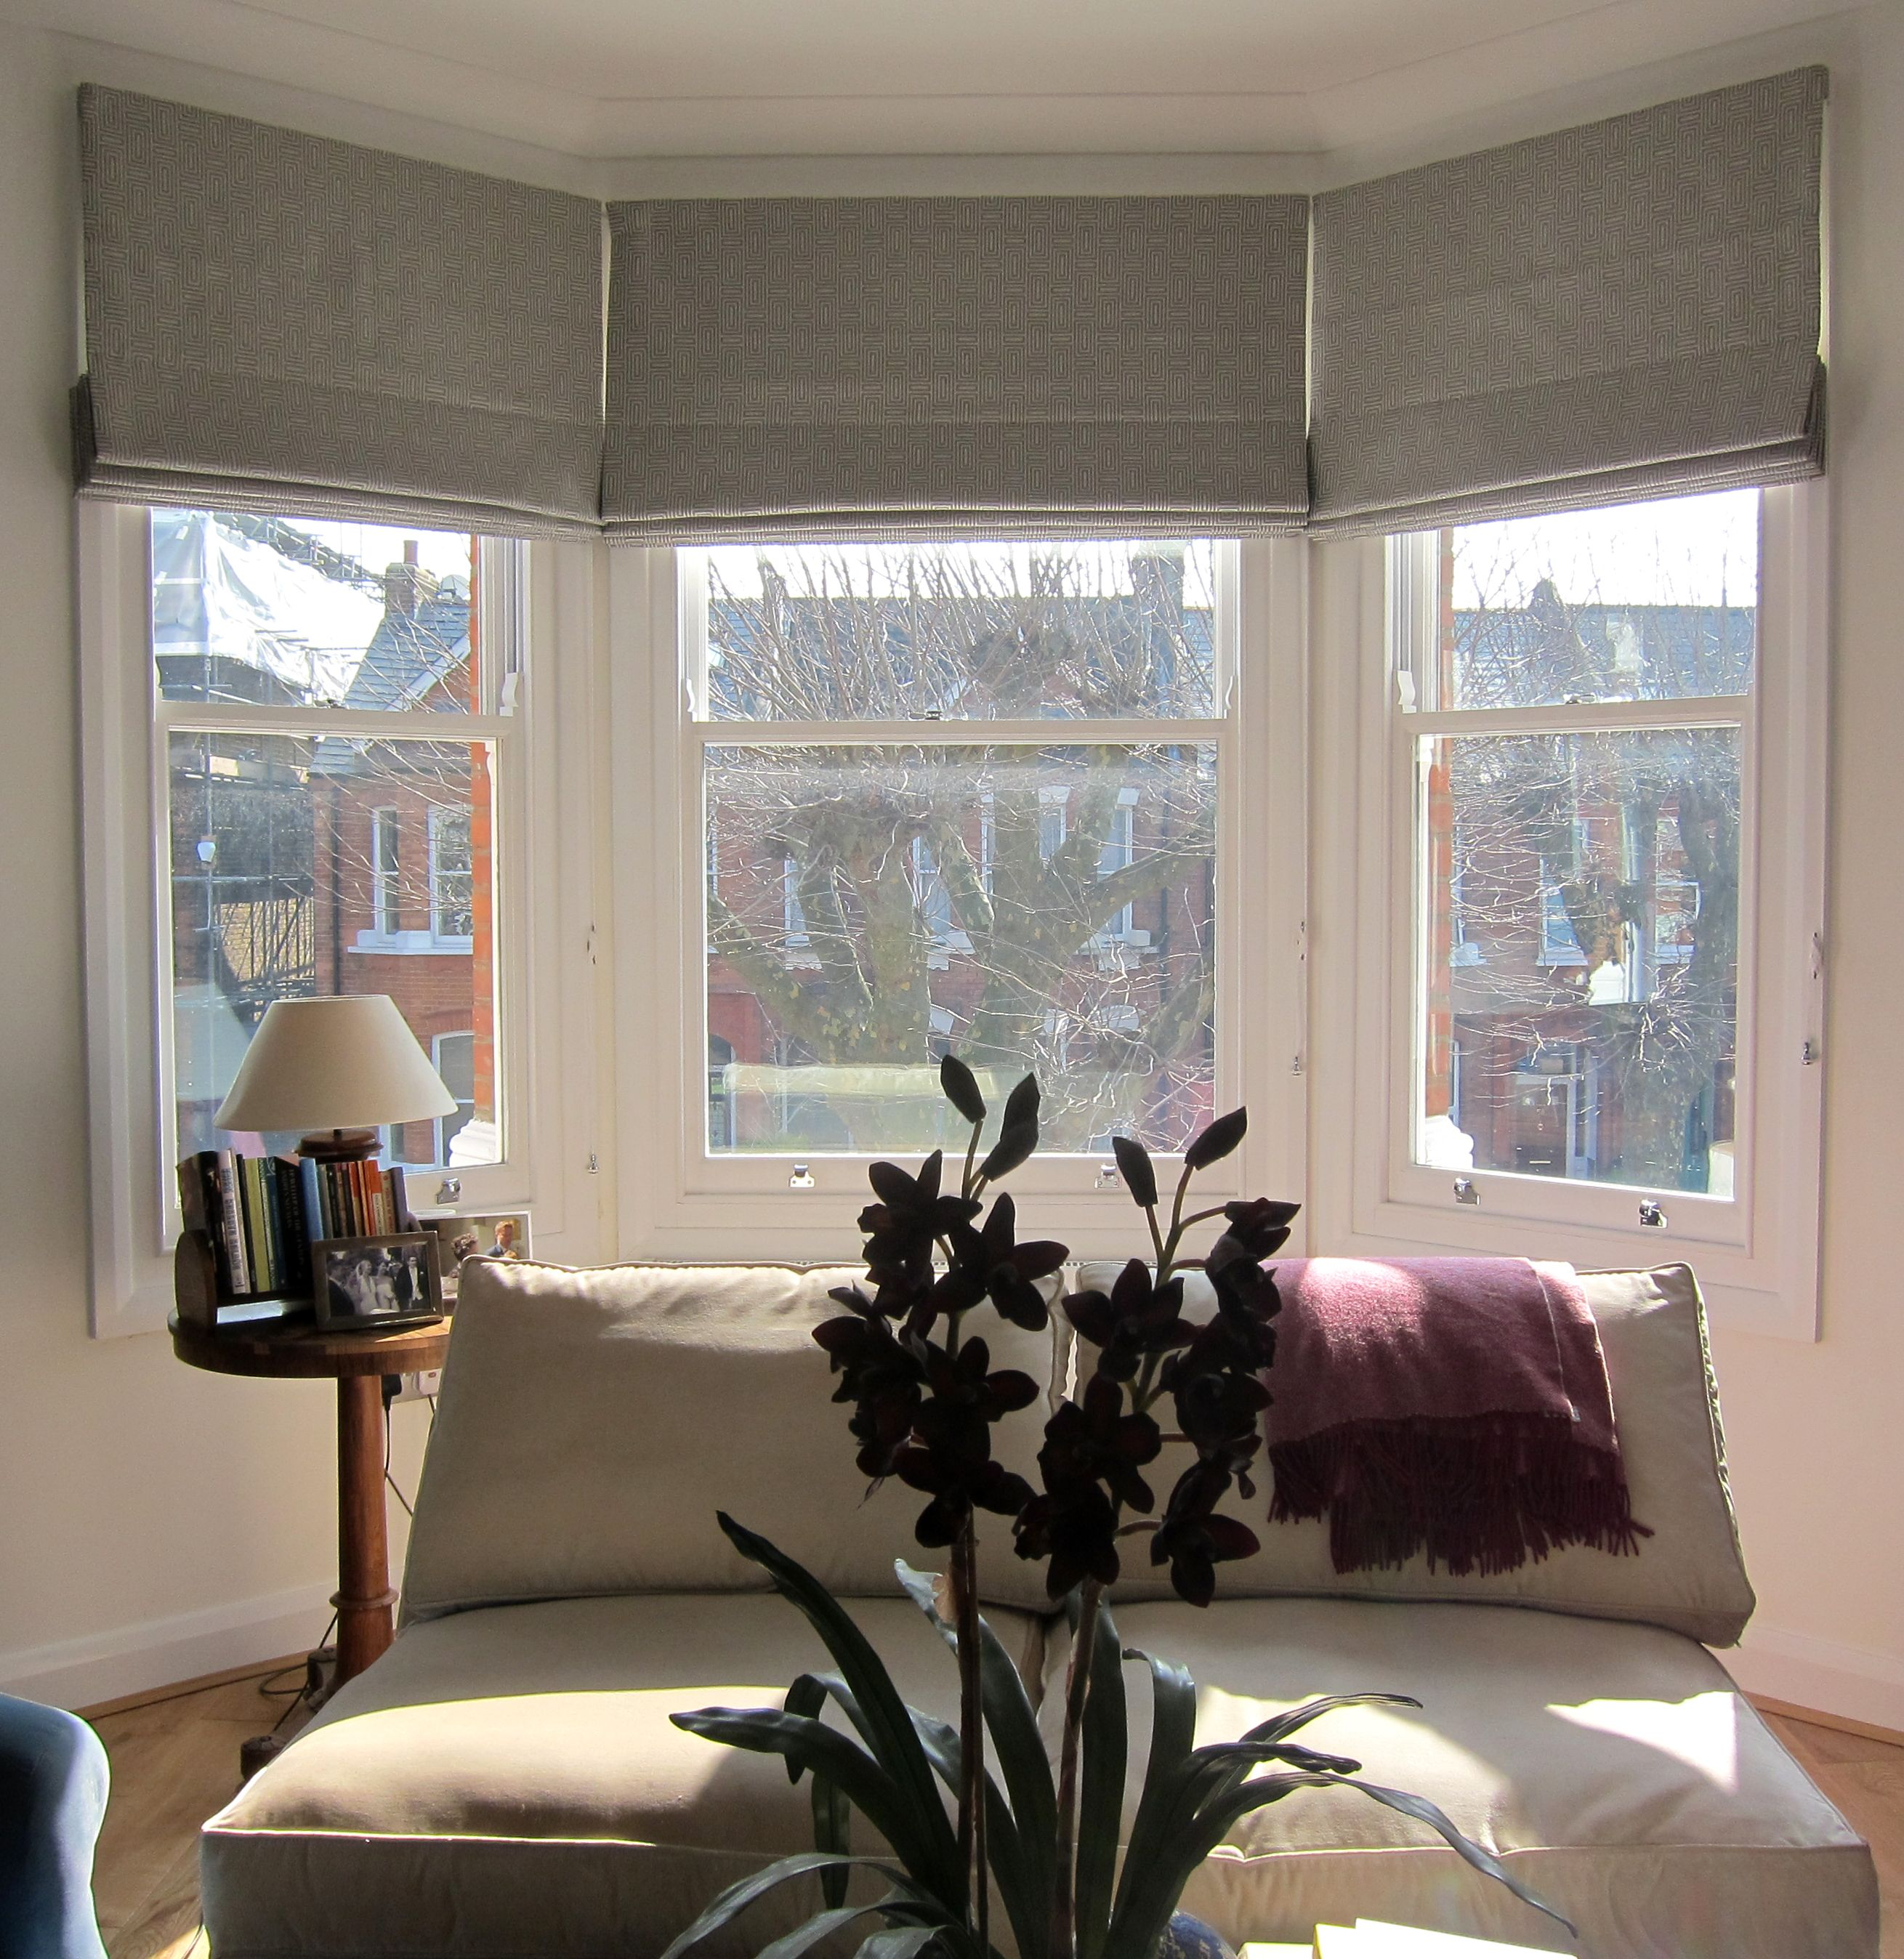 Geometric patterned roman blinds in a bay window could for Roman shades for bay window